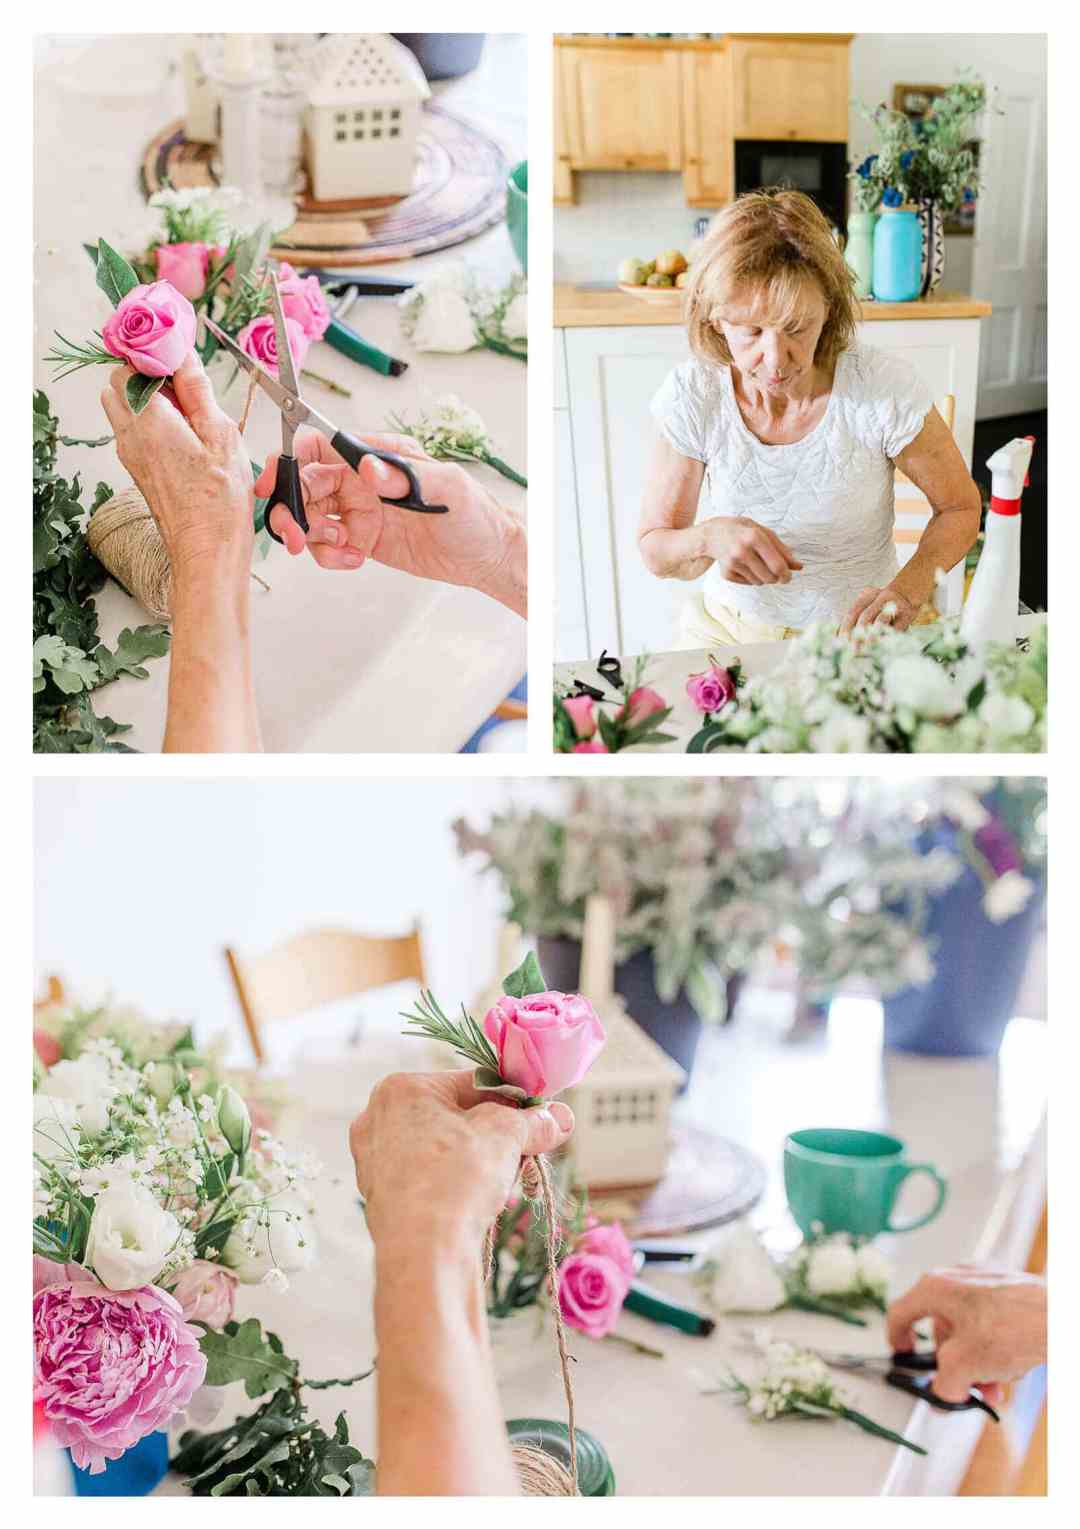 Mother DIY wedding flowers for East Grinstead wedding | West Sussex photographer